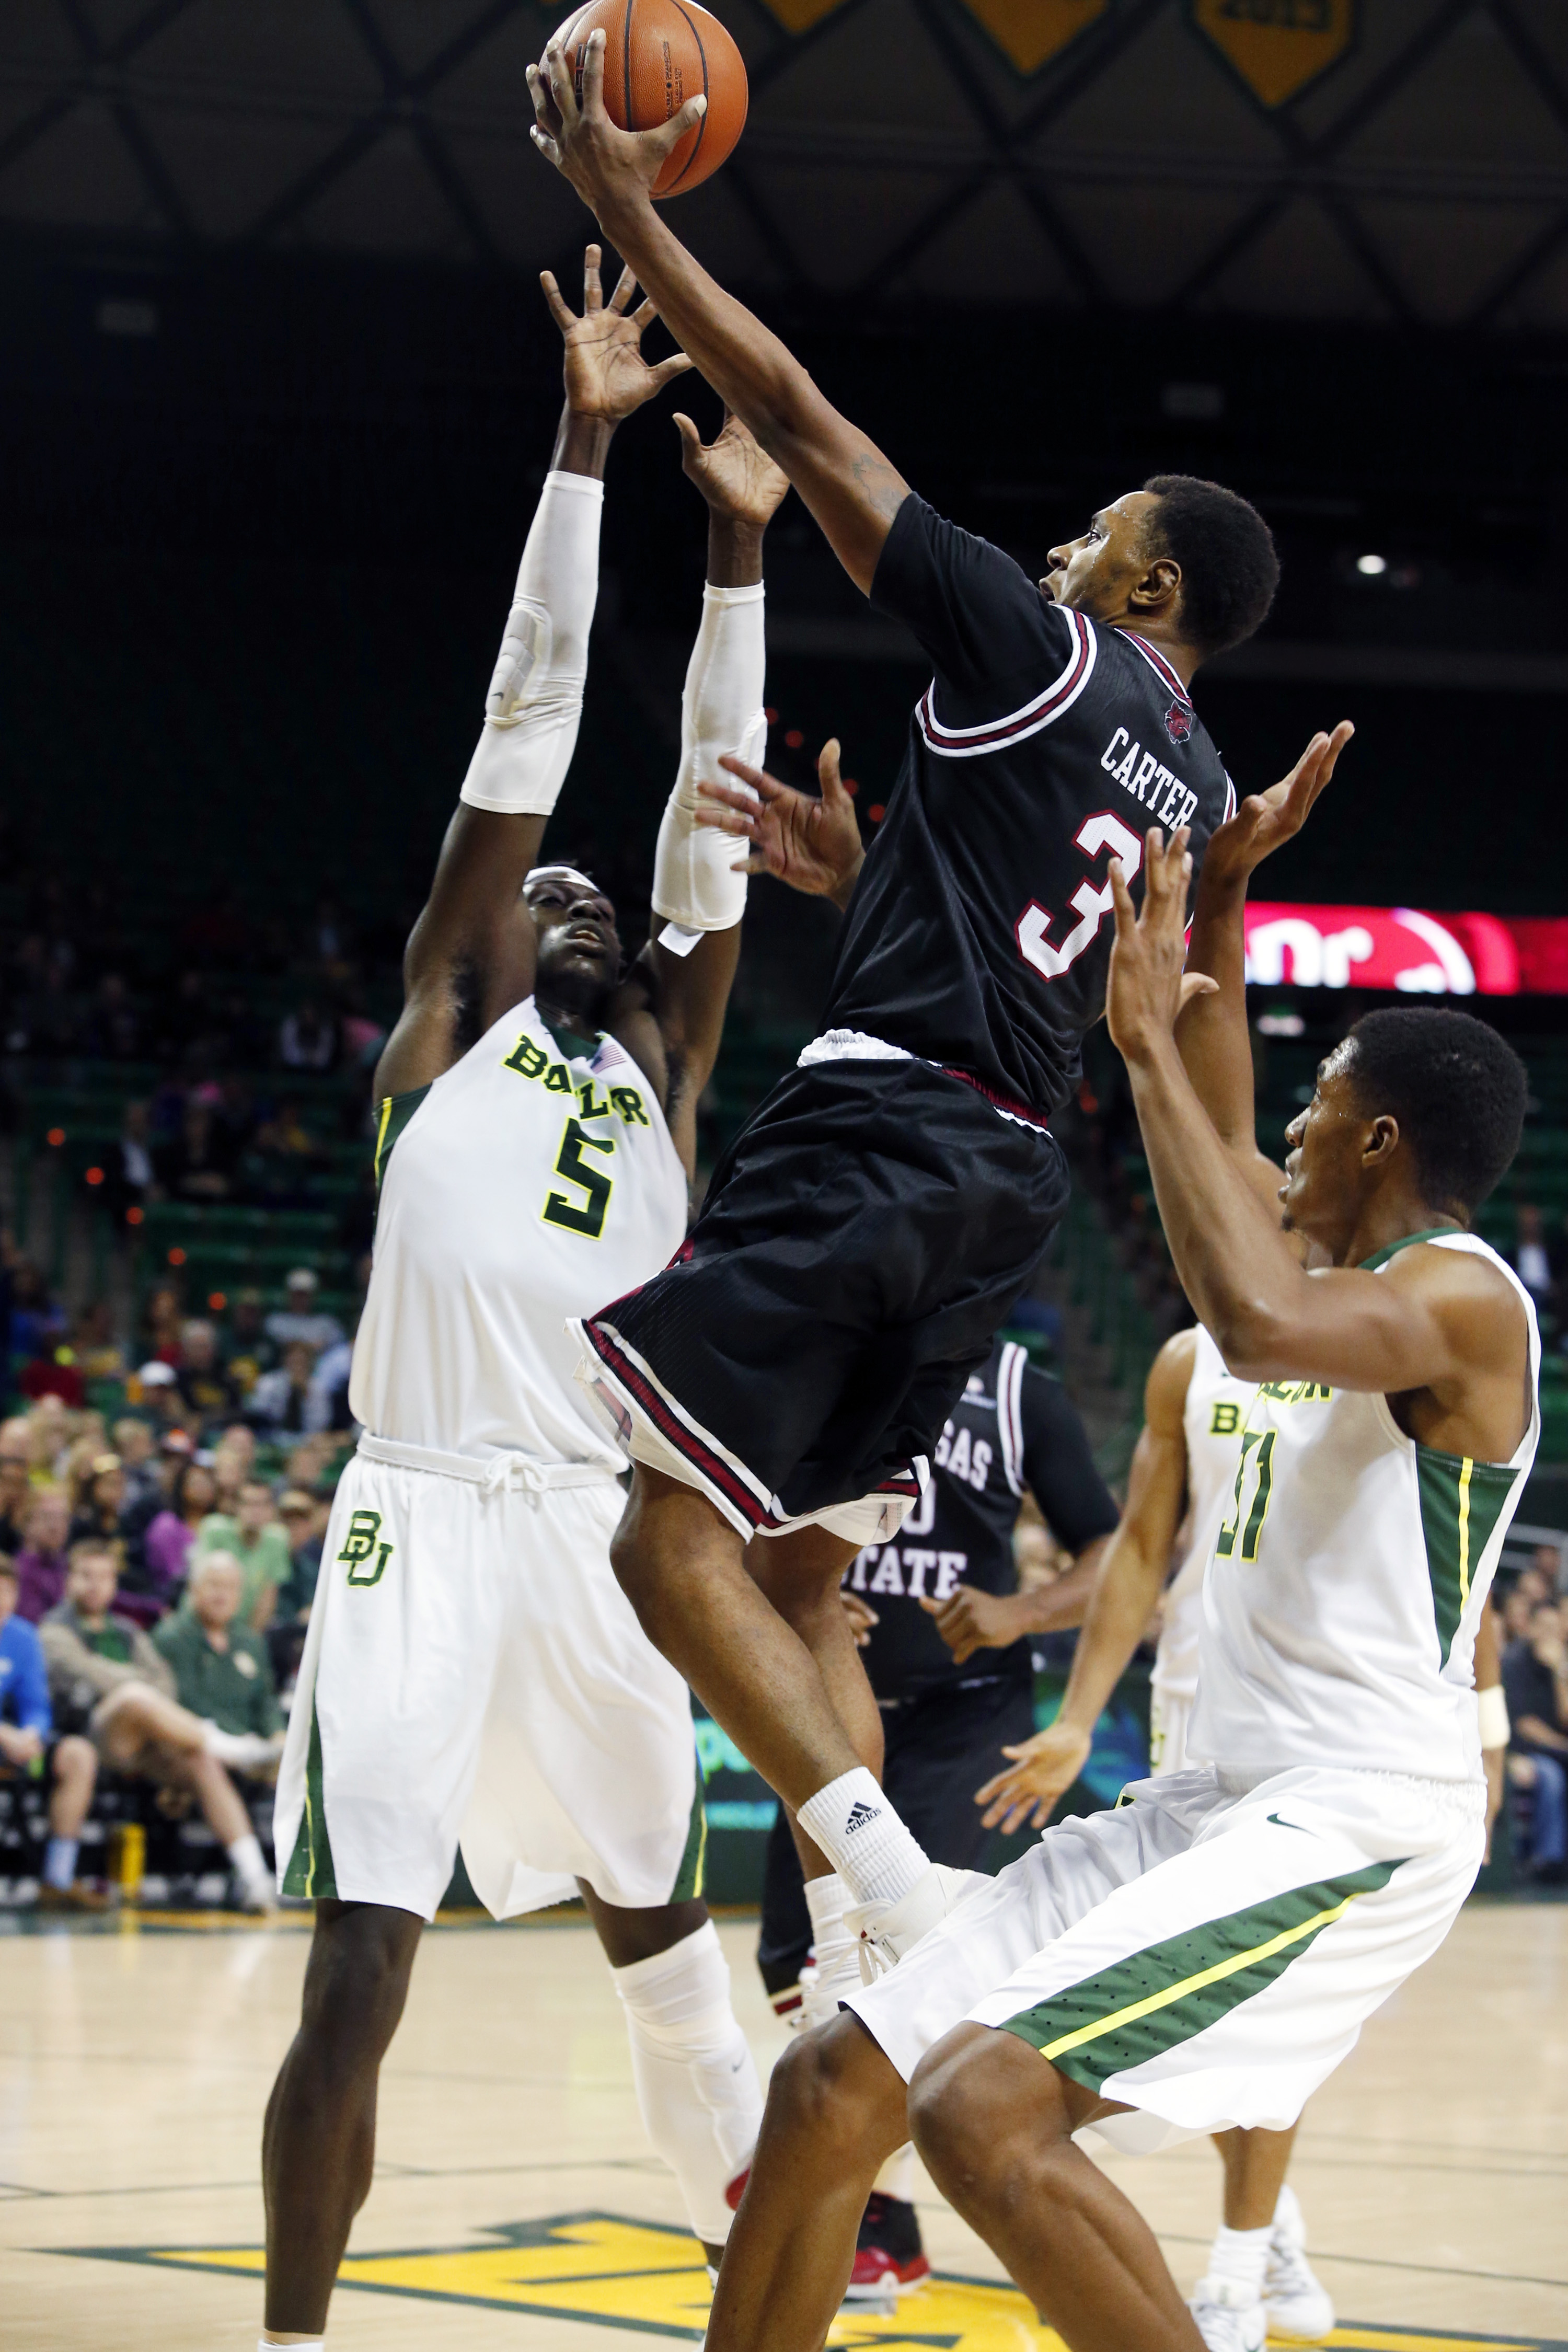 Arkansas State guard Devin Carter (3), center, scores past Baylor forward Johnathan Motley (5), left, and forward Terry Maston (31), right, in the second half of an NCAA college basketball game, Friday, Nov. 27, 2015, in Waco, Texas. (Rod Aydelotte/Waco T